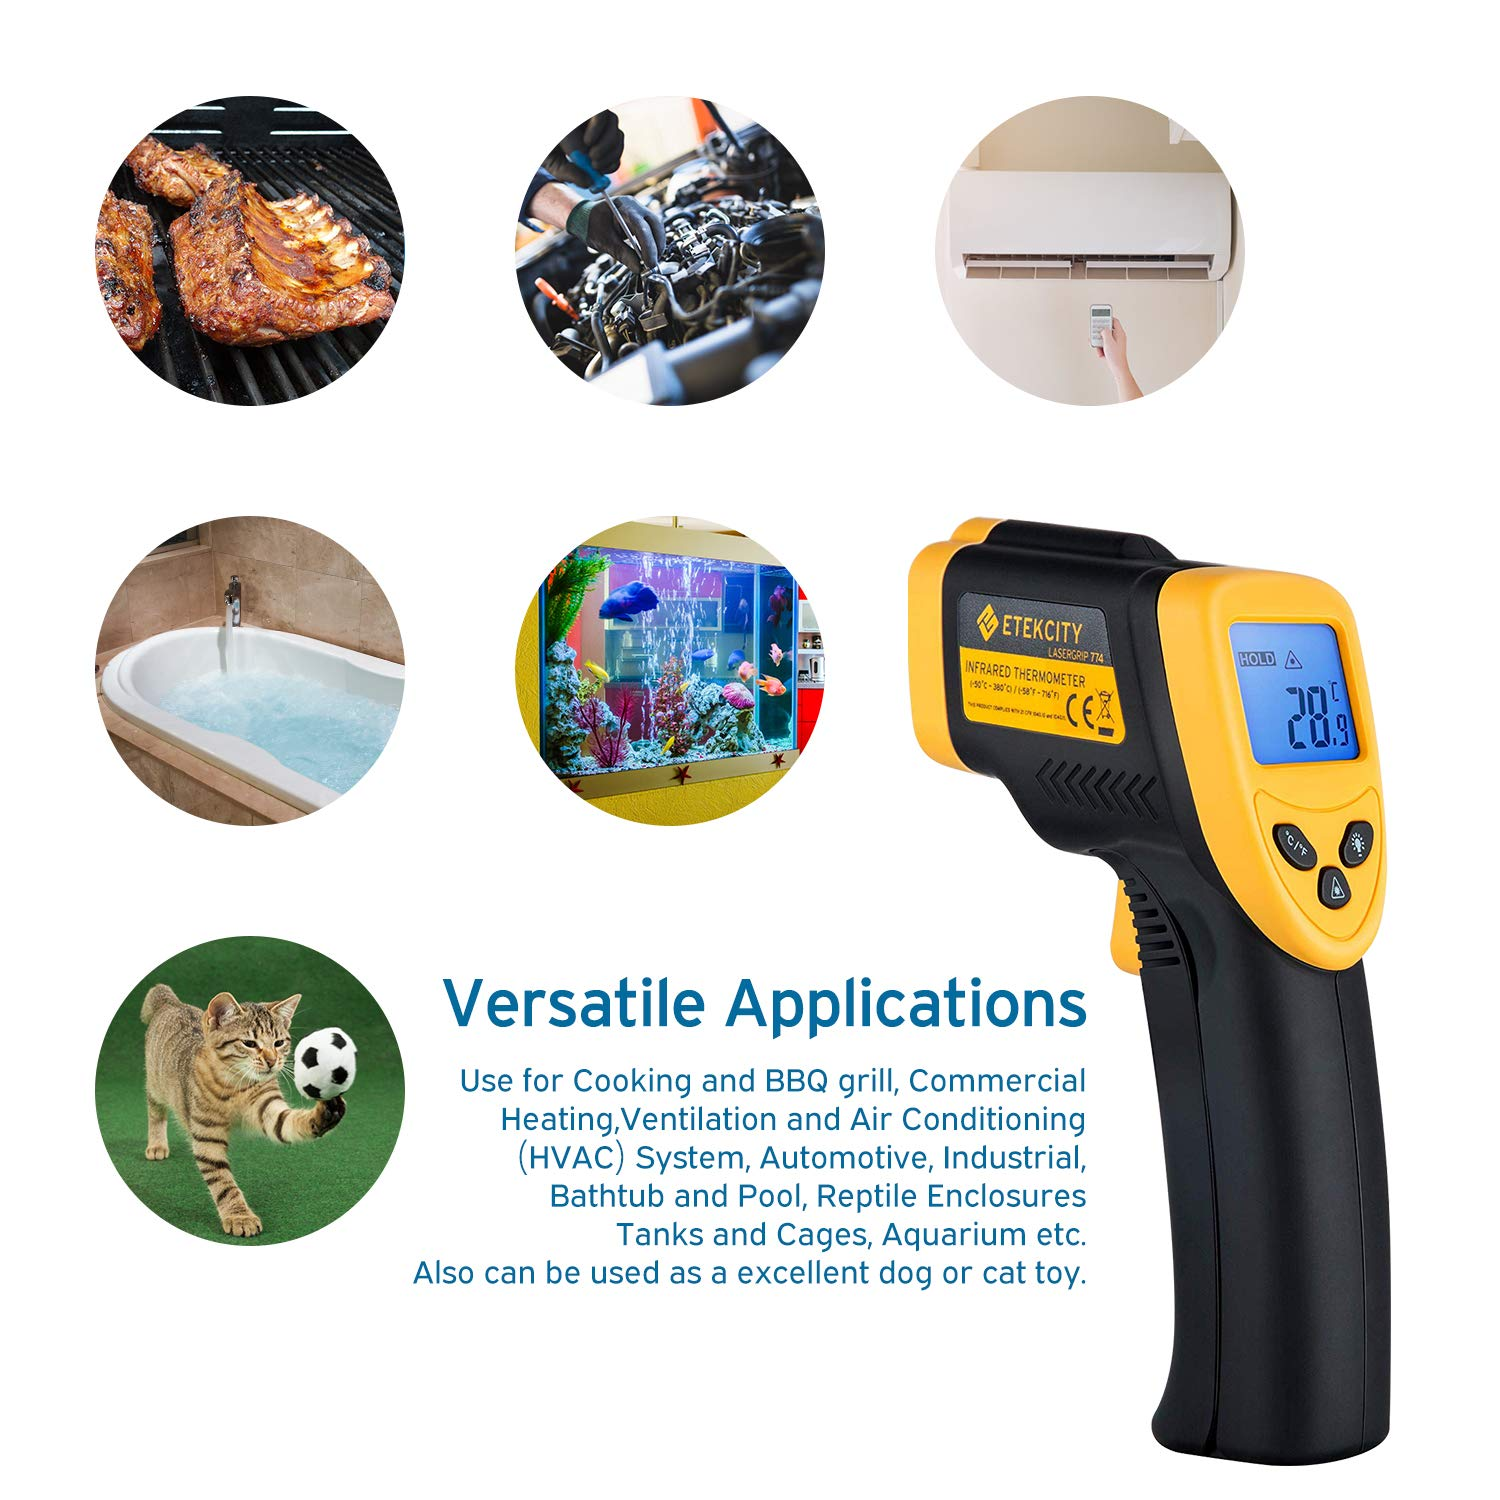 Etekcity Lasergrip 774 Non-contact Digital Laser Infrared Thermometer Temperature Gun -58℉~ 716℉ (-50℃ ~ 380℃), Yellow and Black by Etekcity (Image #4)